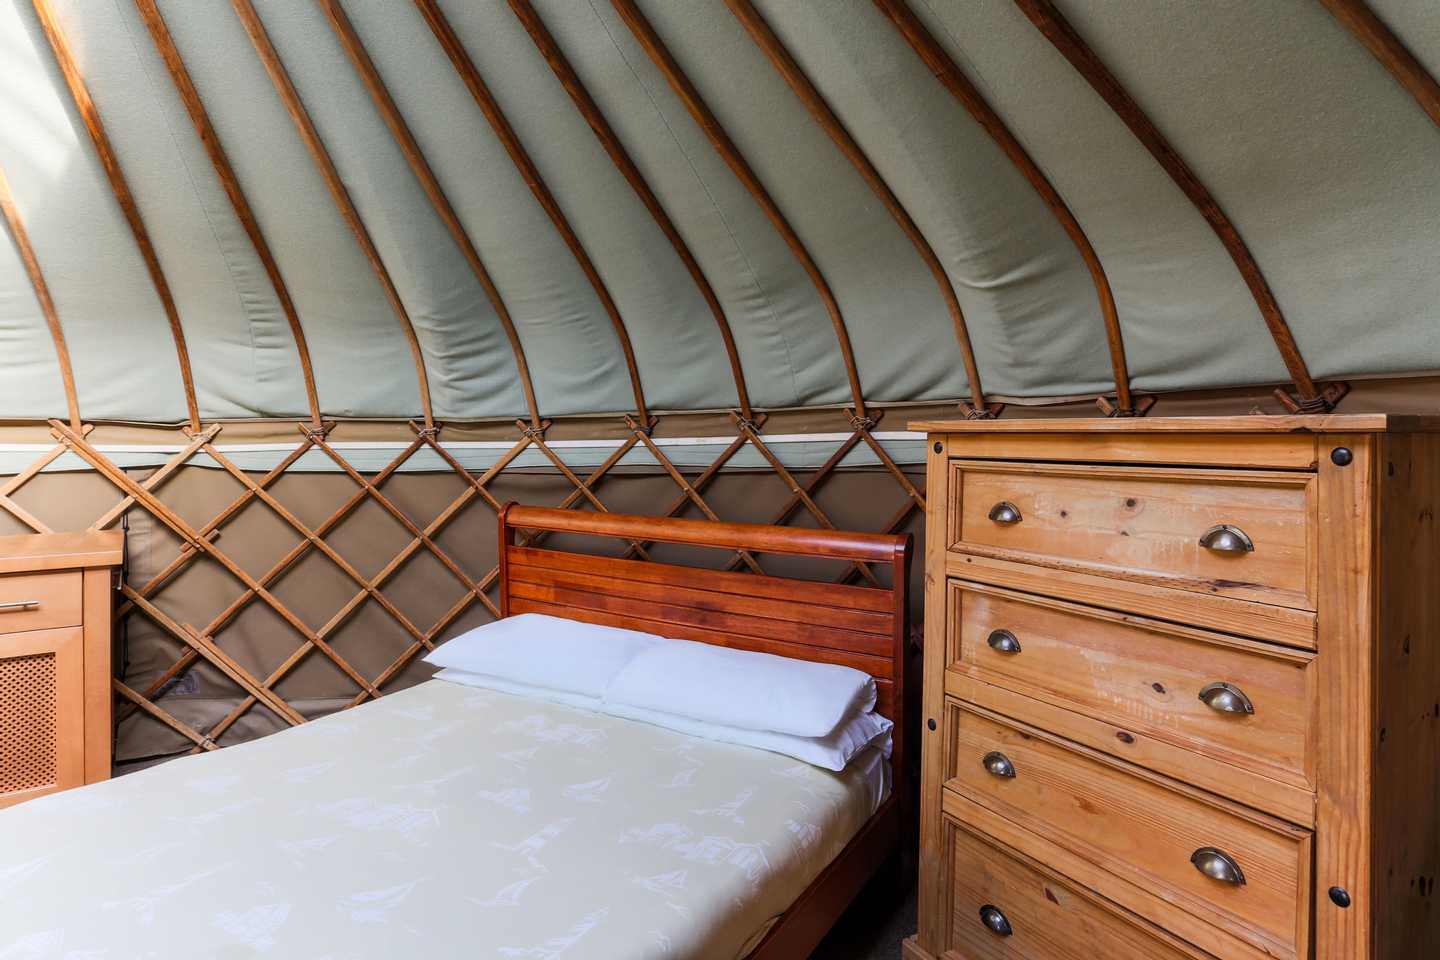 A Yurt with a double bed